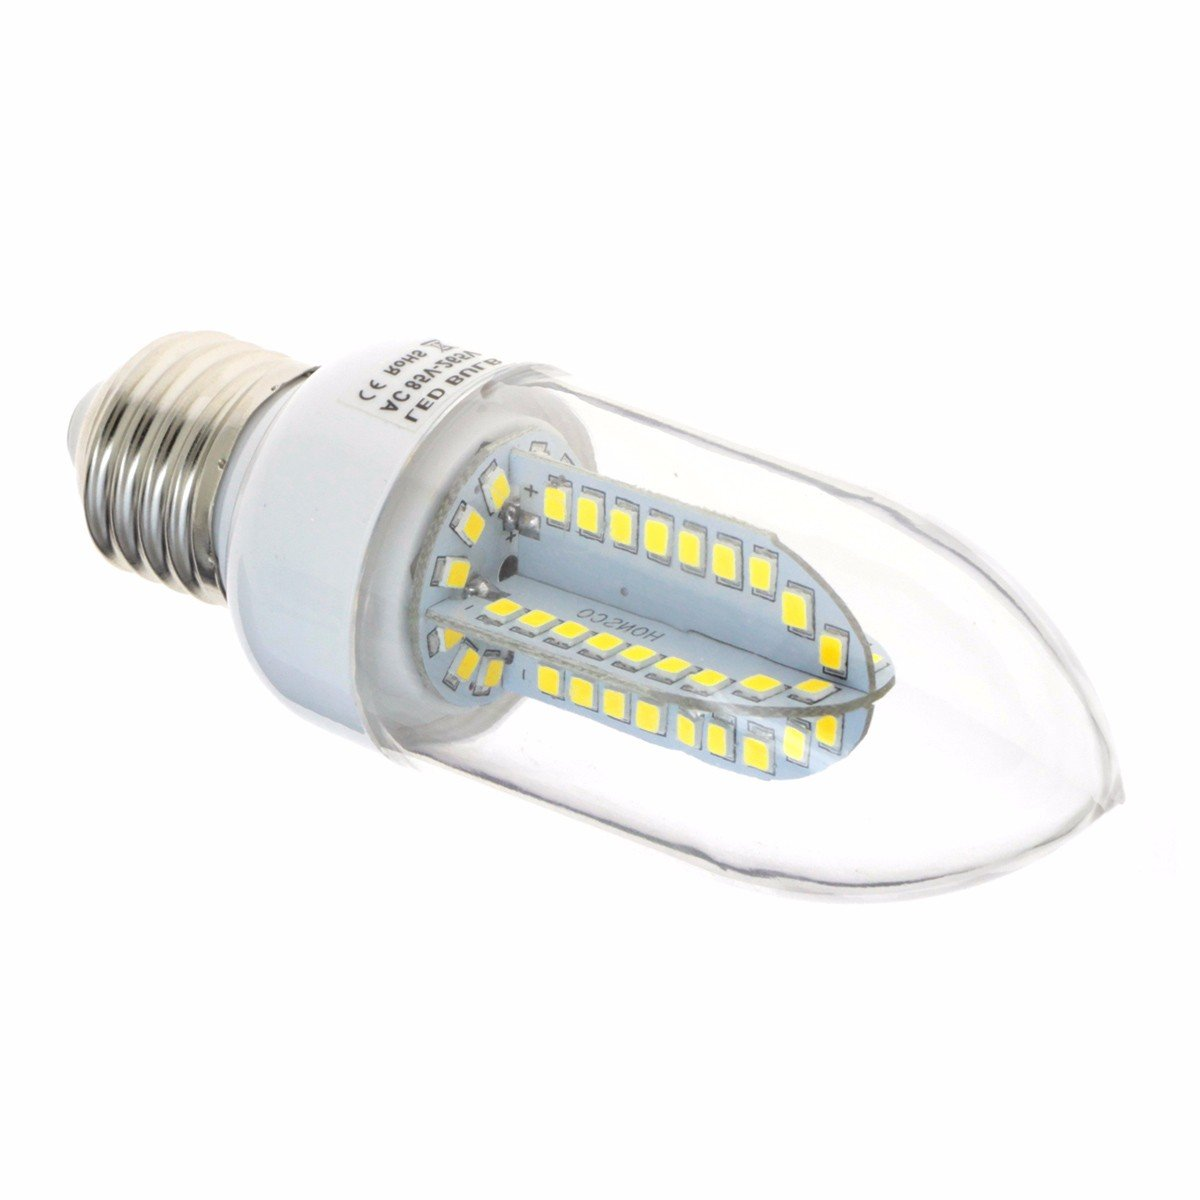 LIUXINDA-DP Cost-effective bulb 6 pack E27 LED corn lamp, voltage: 110V-265V (white) Light Bulbs